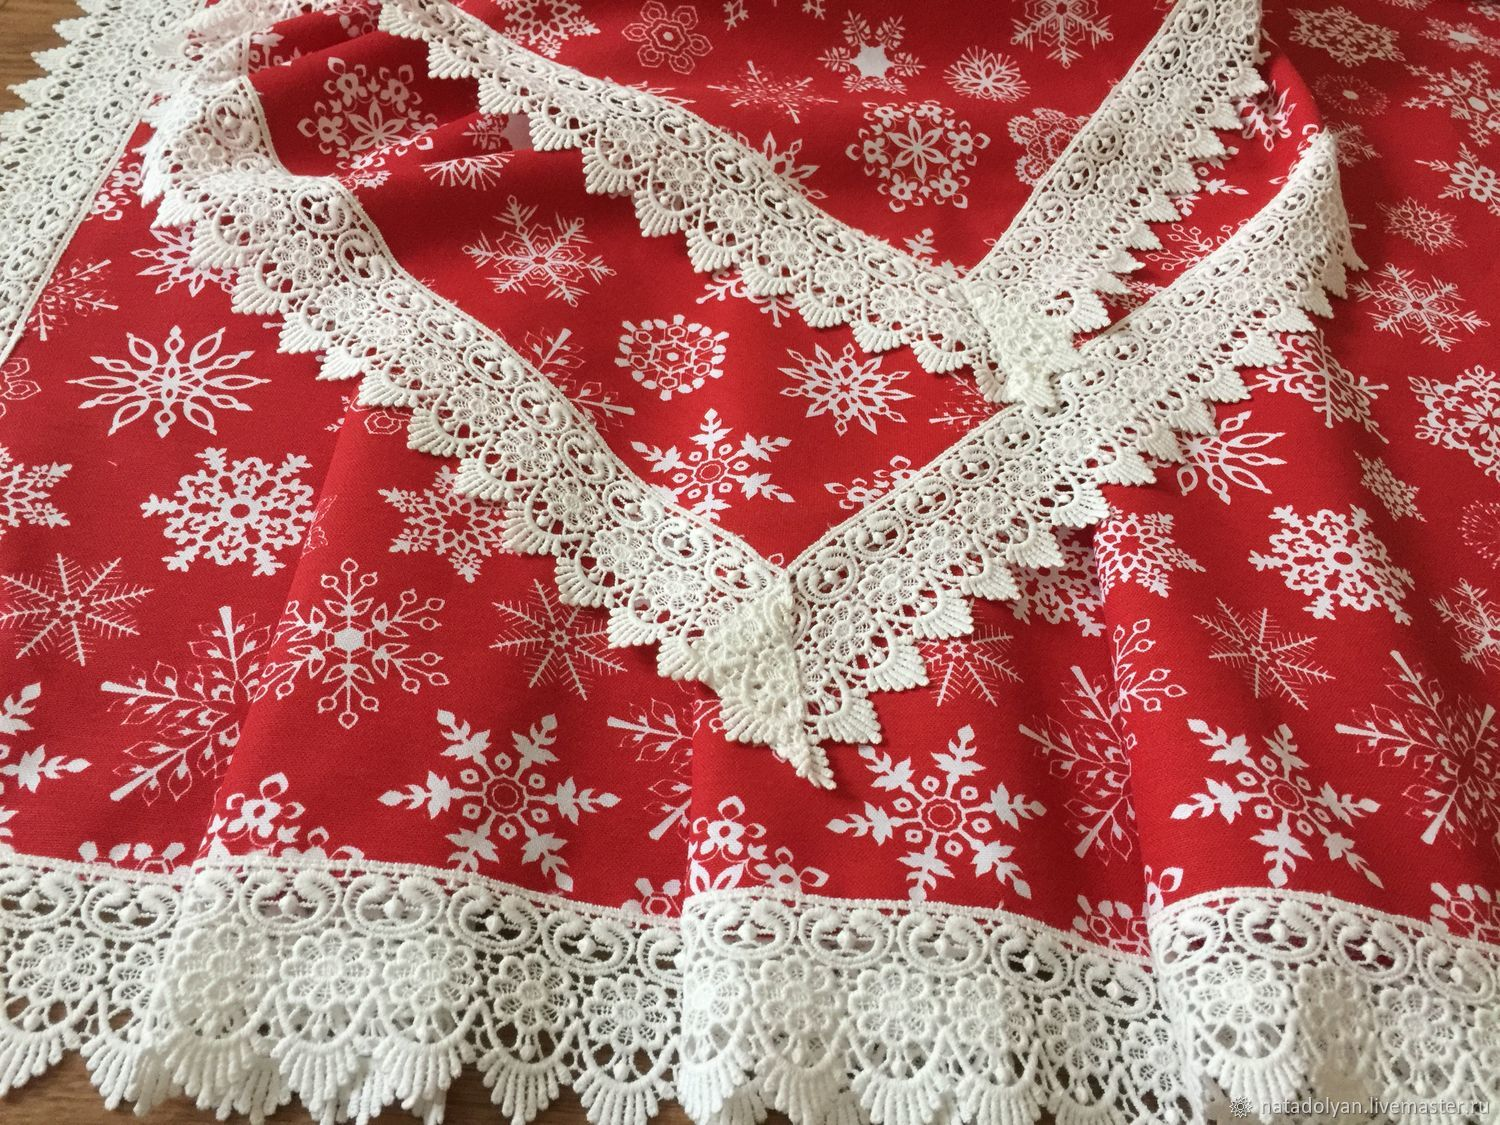 Cotton tablecloth with impregnation 'Snowflakes on red' in stock, Tablecloths, Ivanovo,  Фото №1